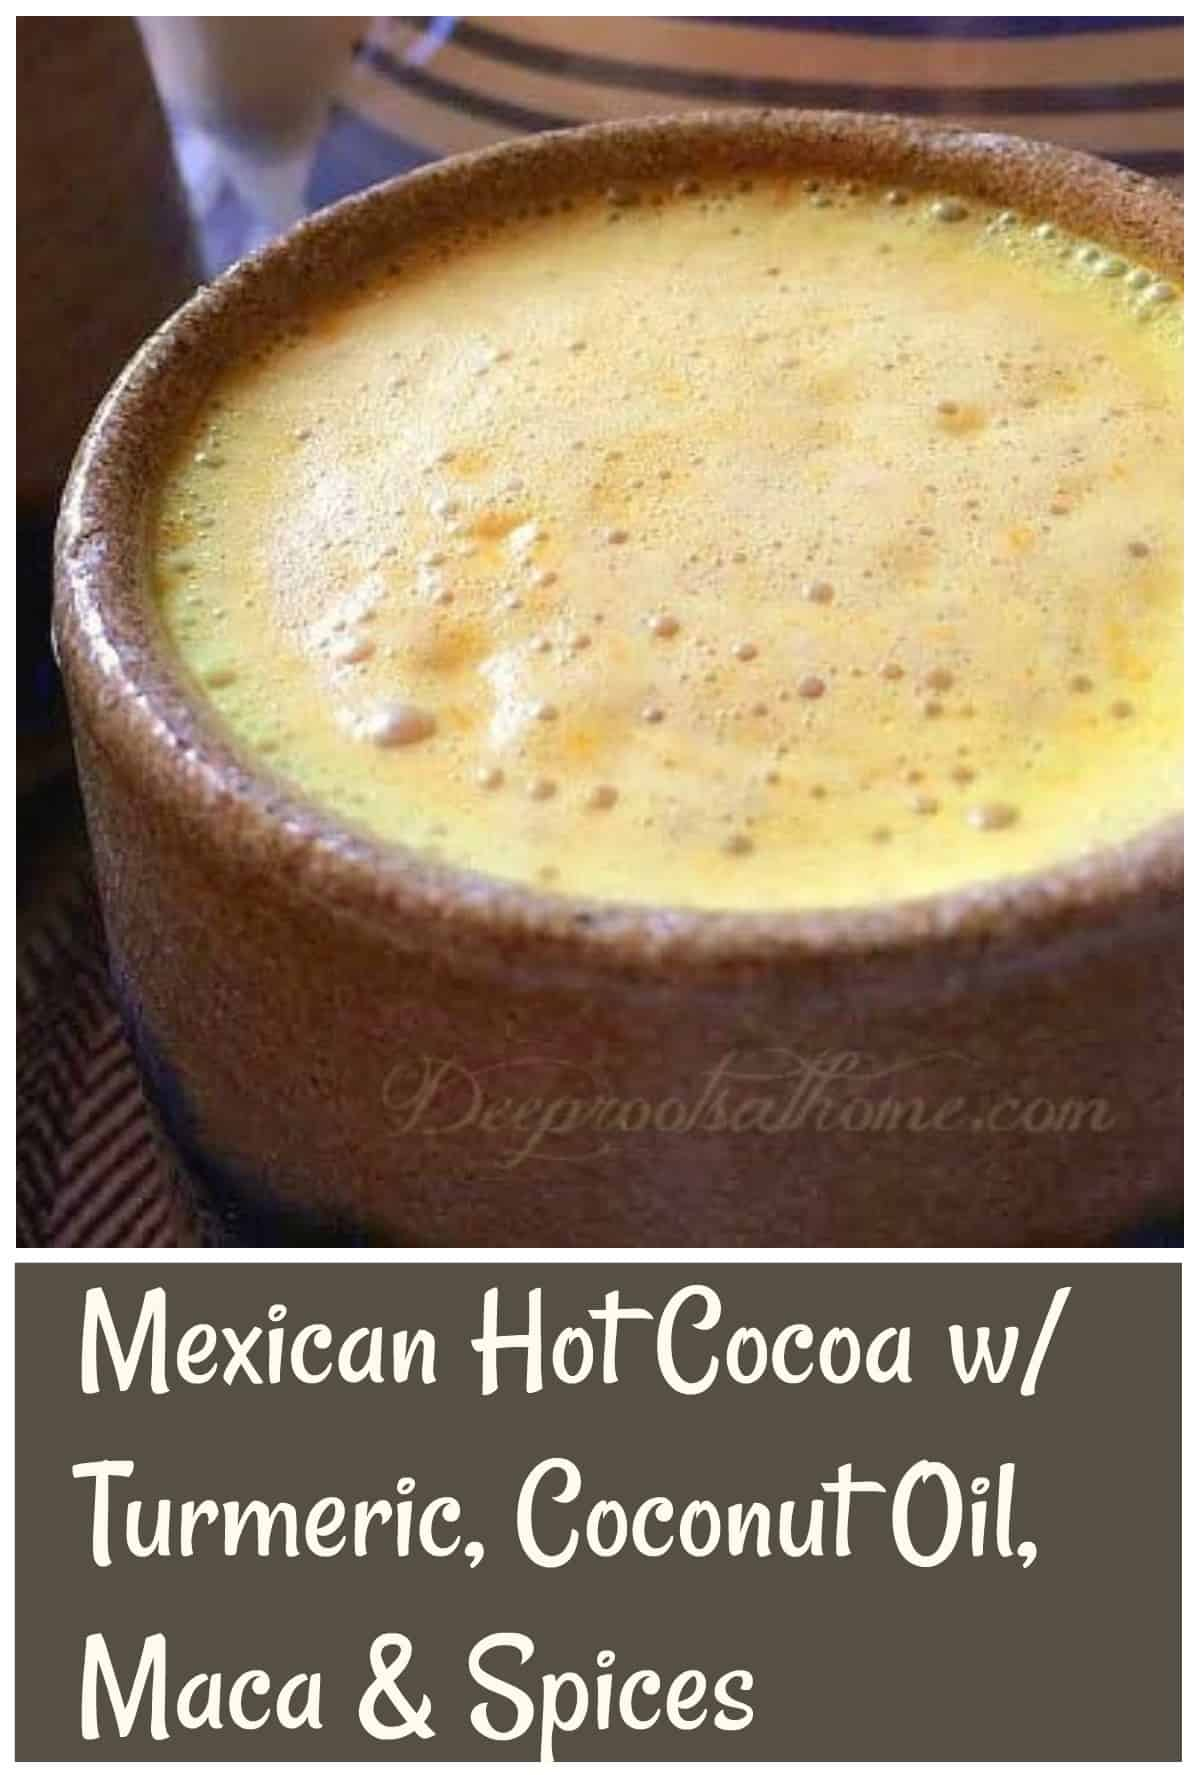 Mexican Hot Cocoa With Turmeric, Coconut Oil, Maca & Spices